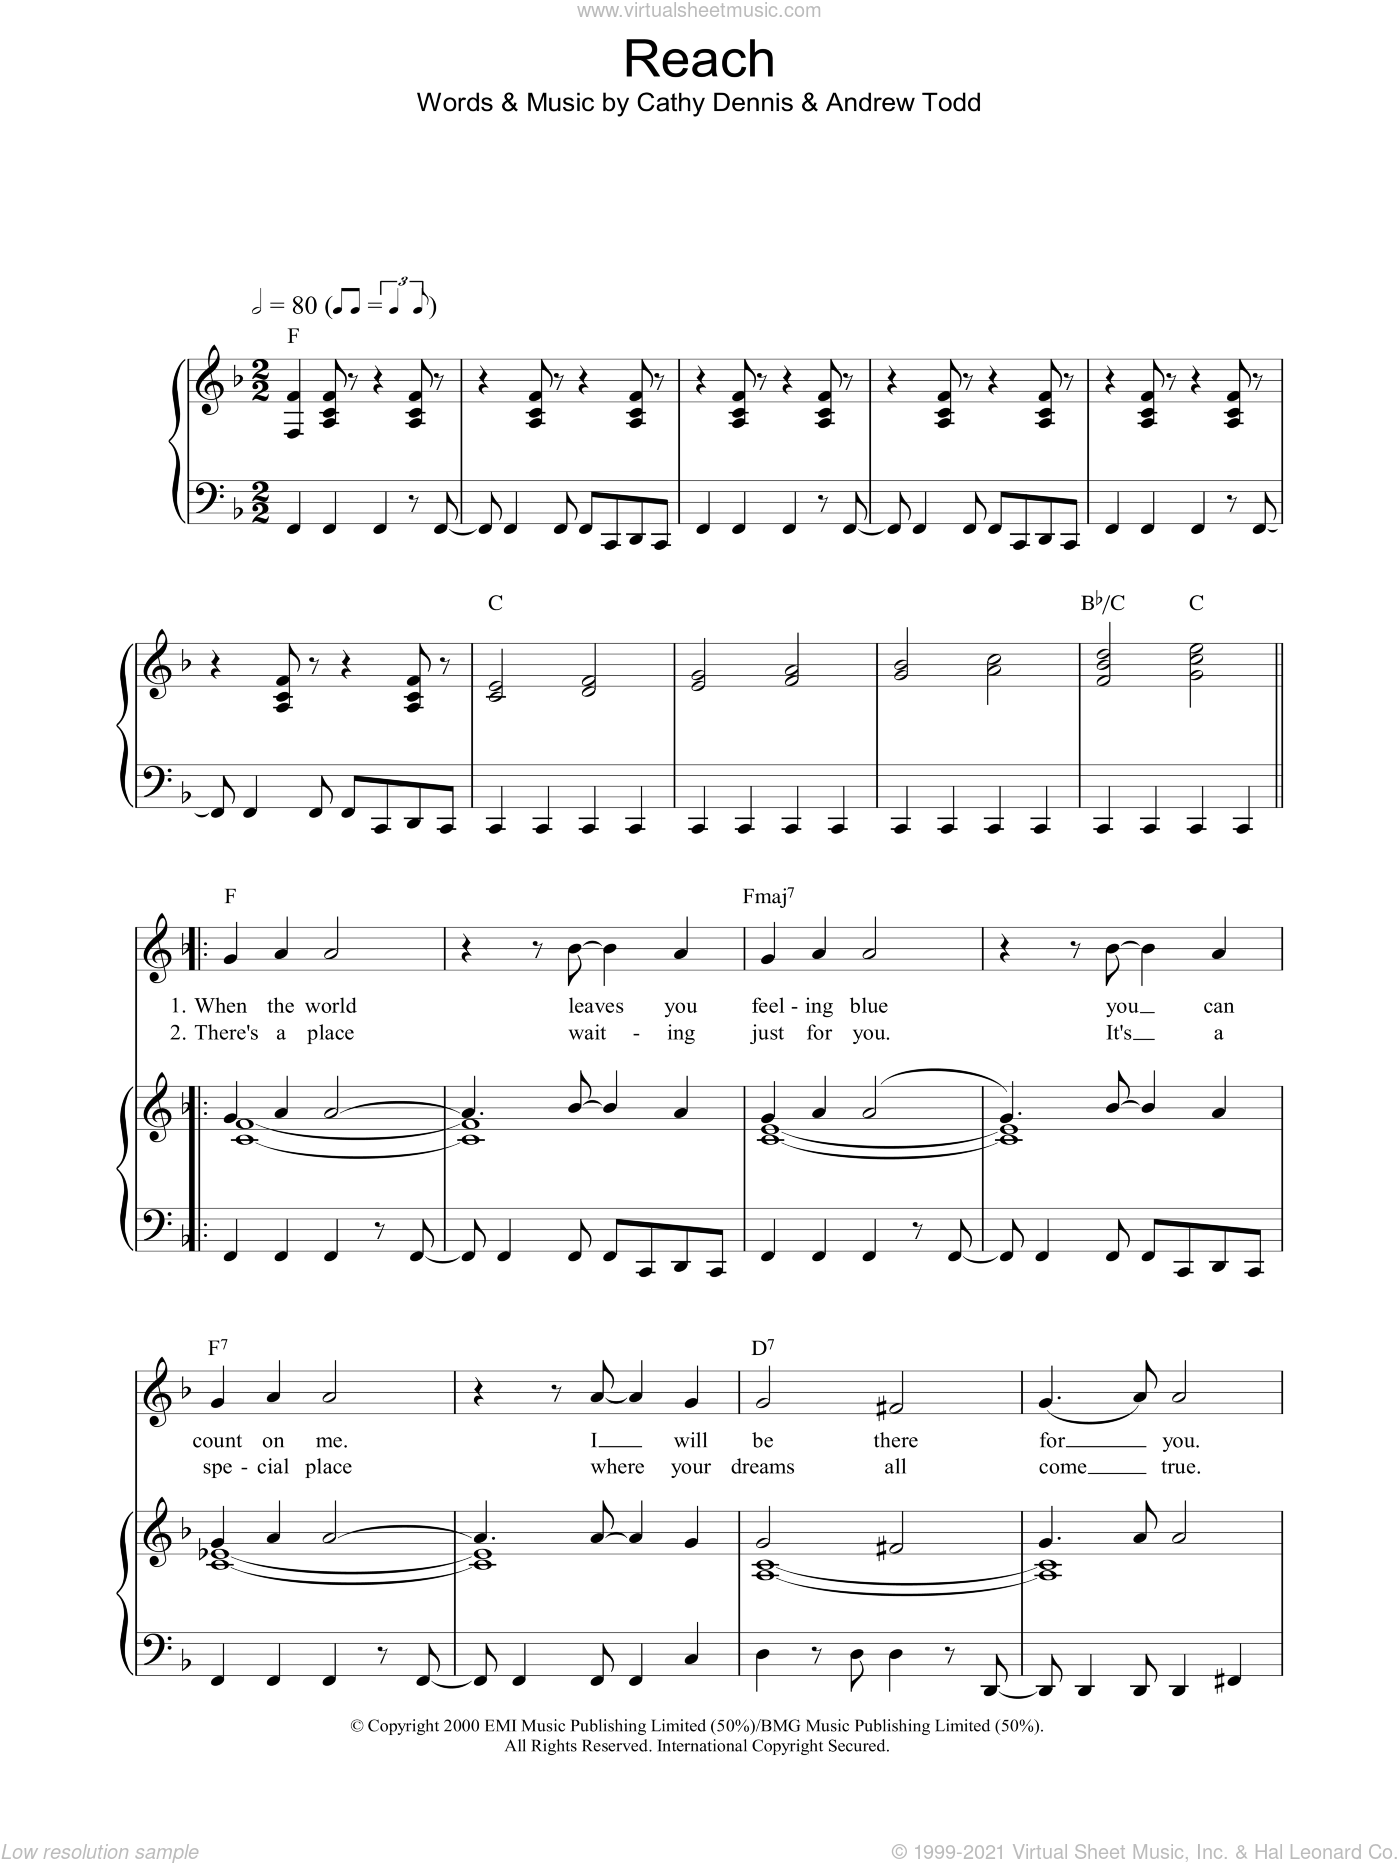 Reach sheet music for voice, piano or guitar by Cathy Dennis